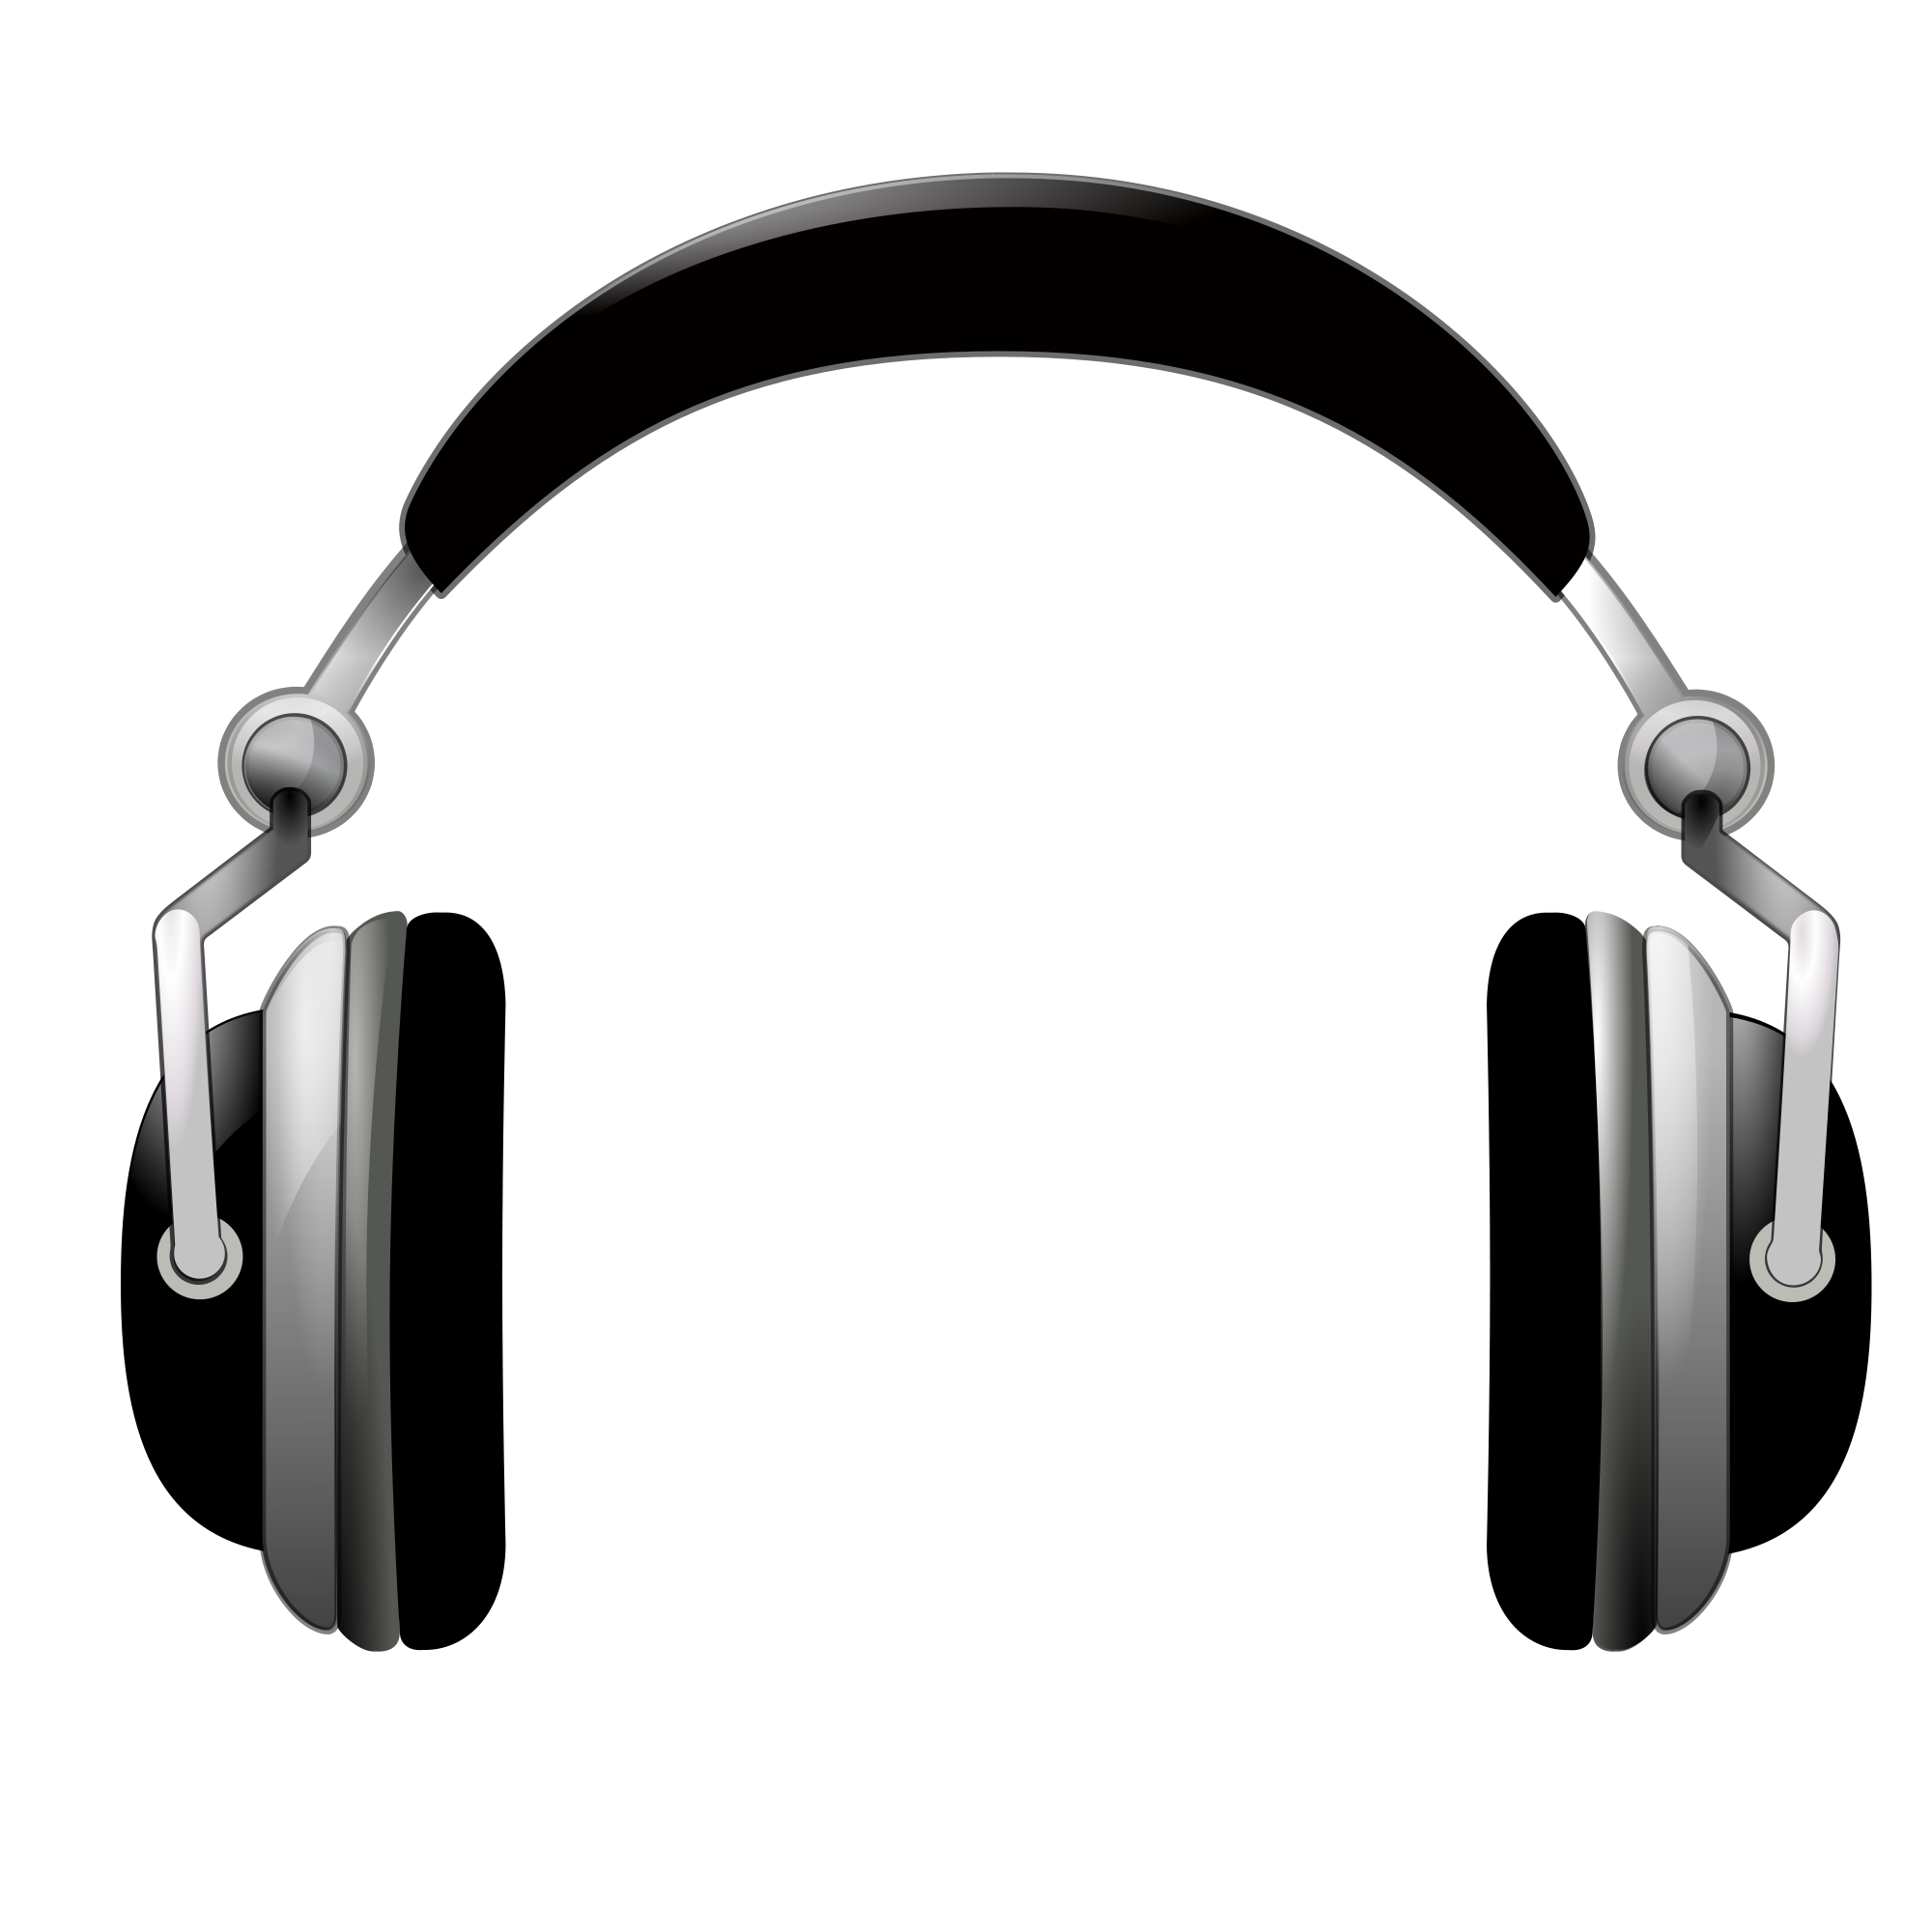 24 earphone png free cliparts that you can download to you computer - Headphones Picture Png Image